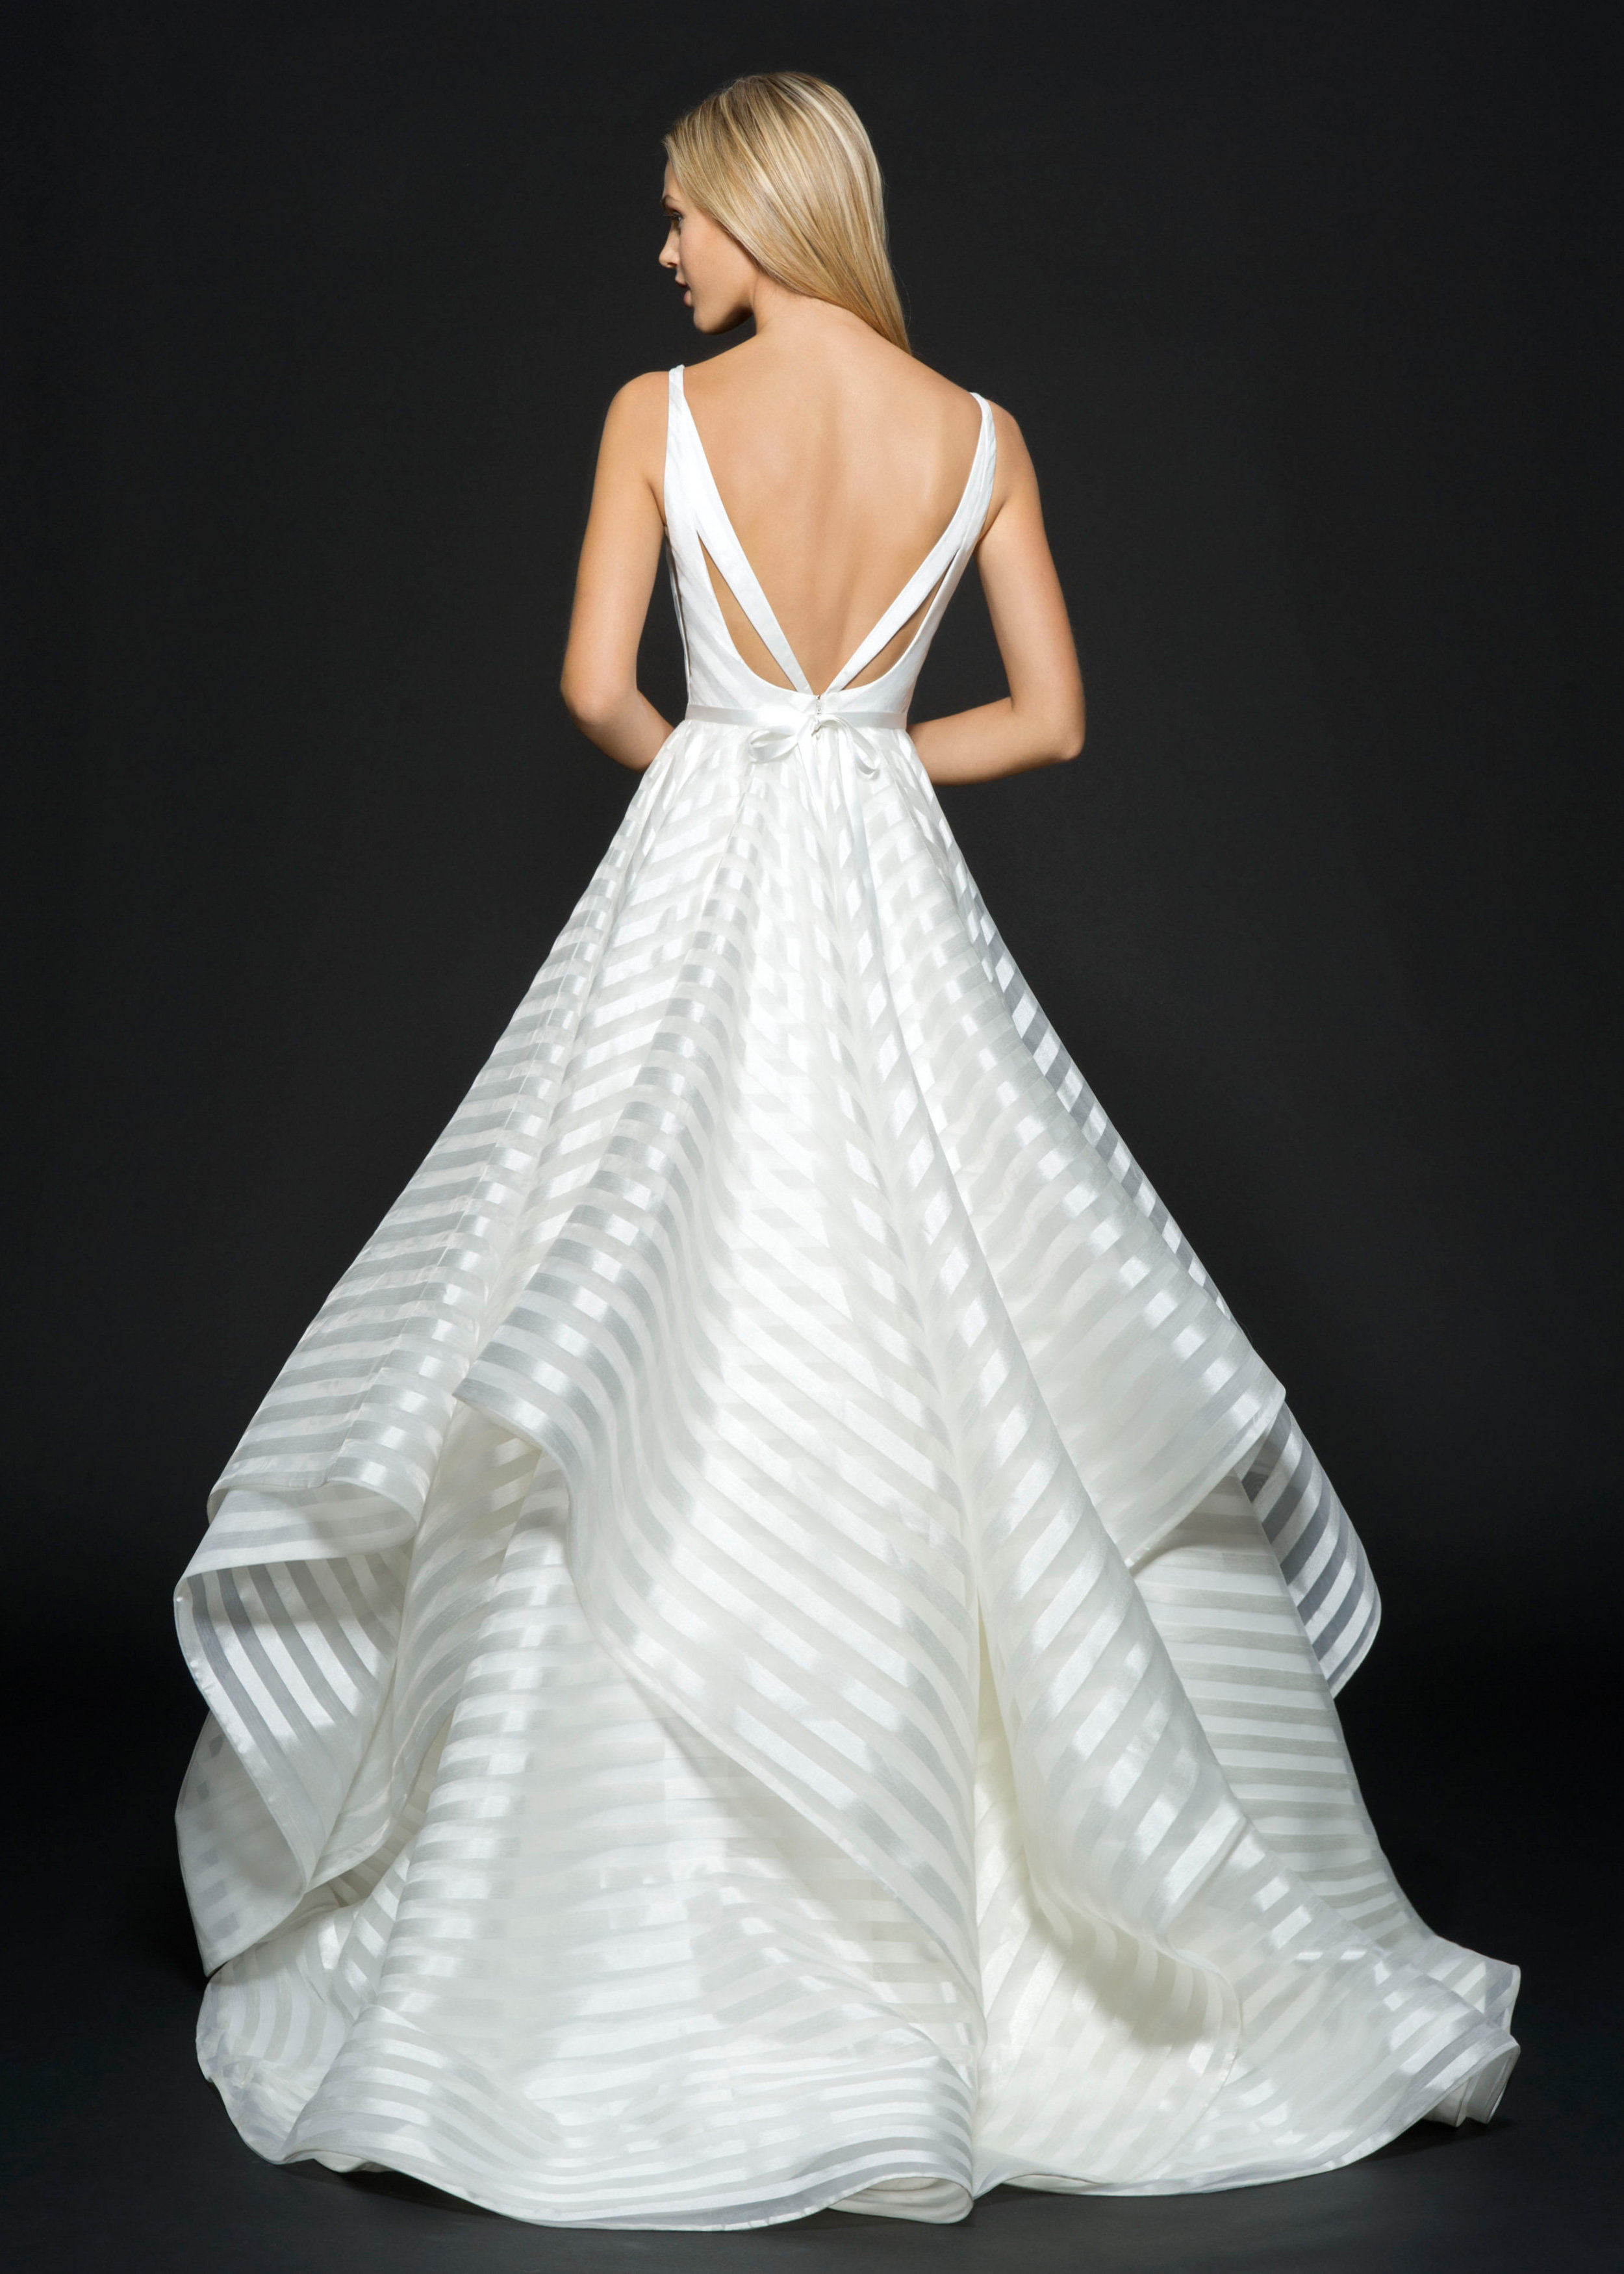 Bridal Gowns and Wedding Dresses by JLM Couture - Style 6661 Decklyn